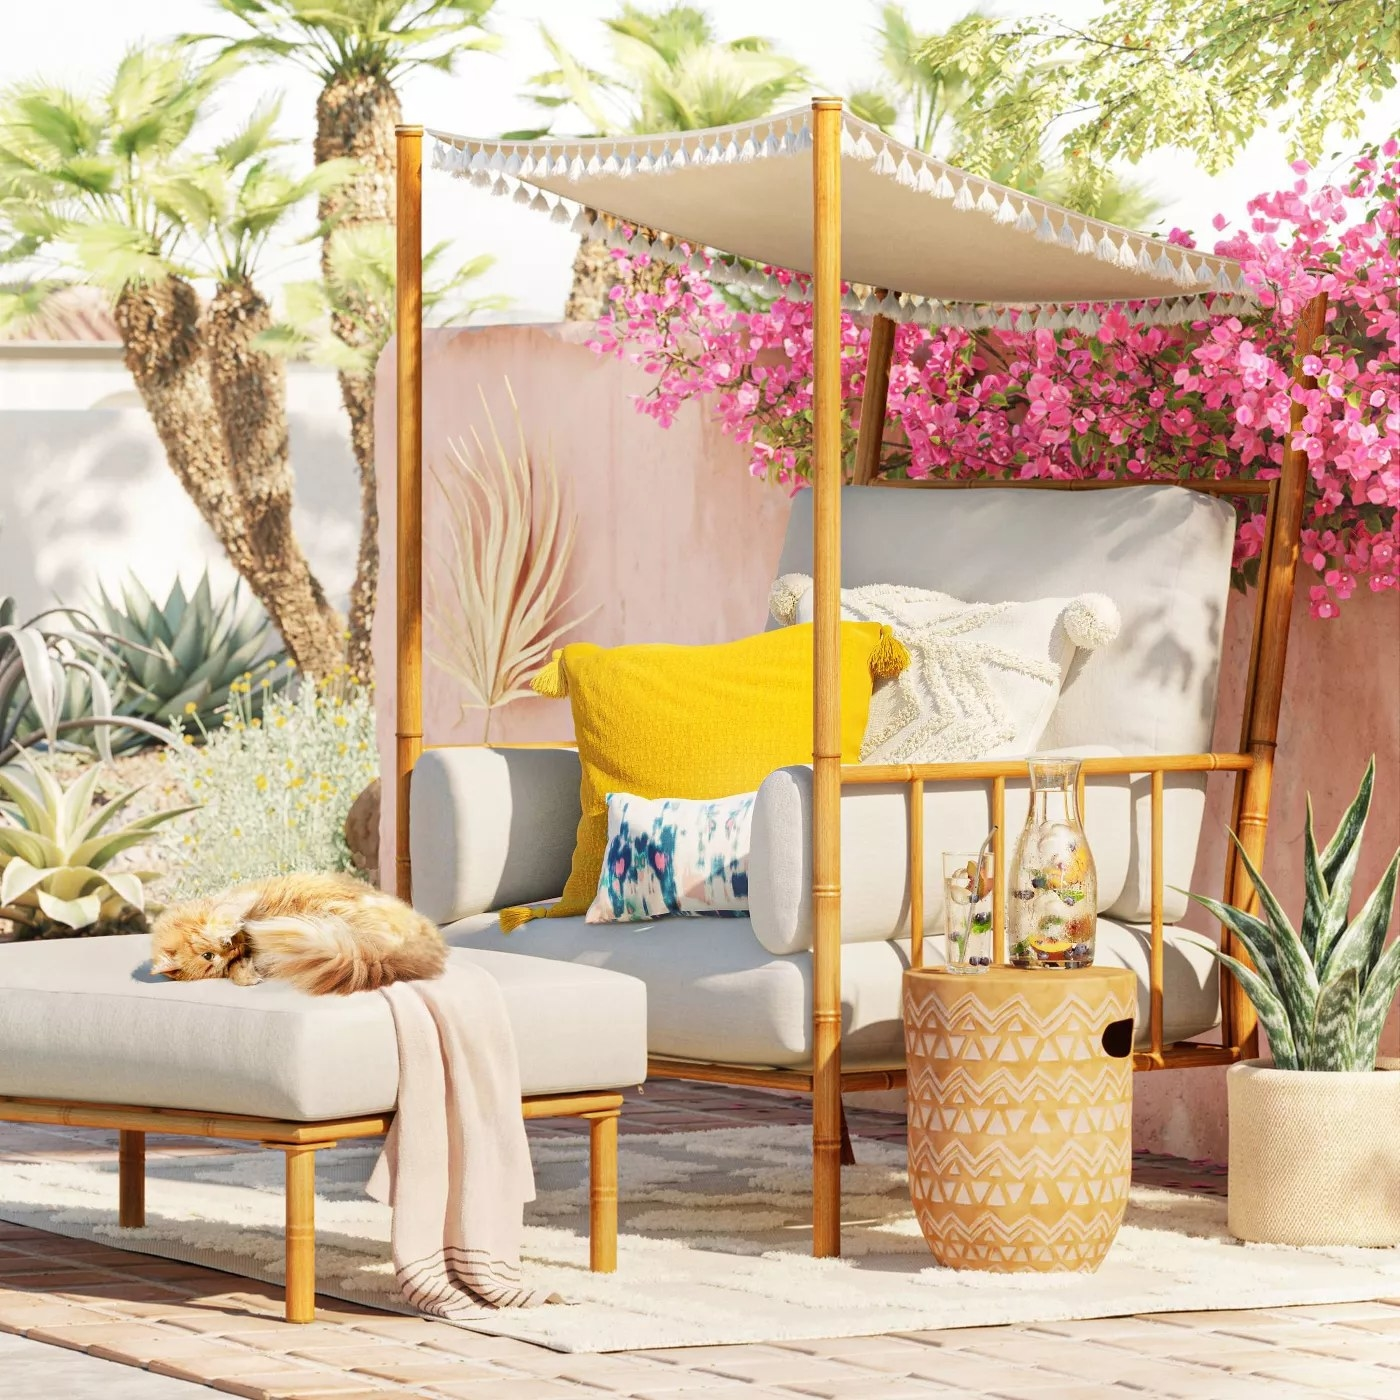 The chair with a canopy and plush cushions in a backyard